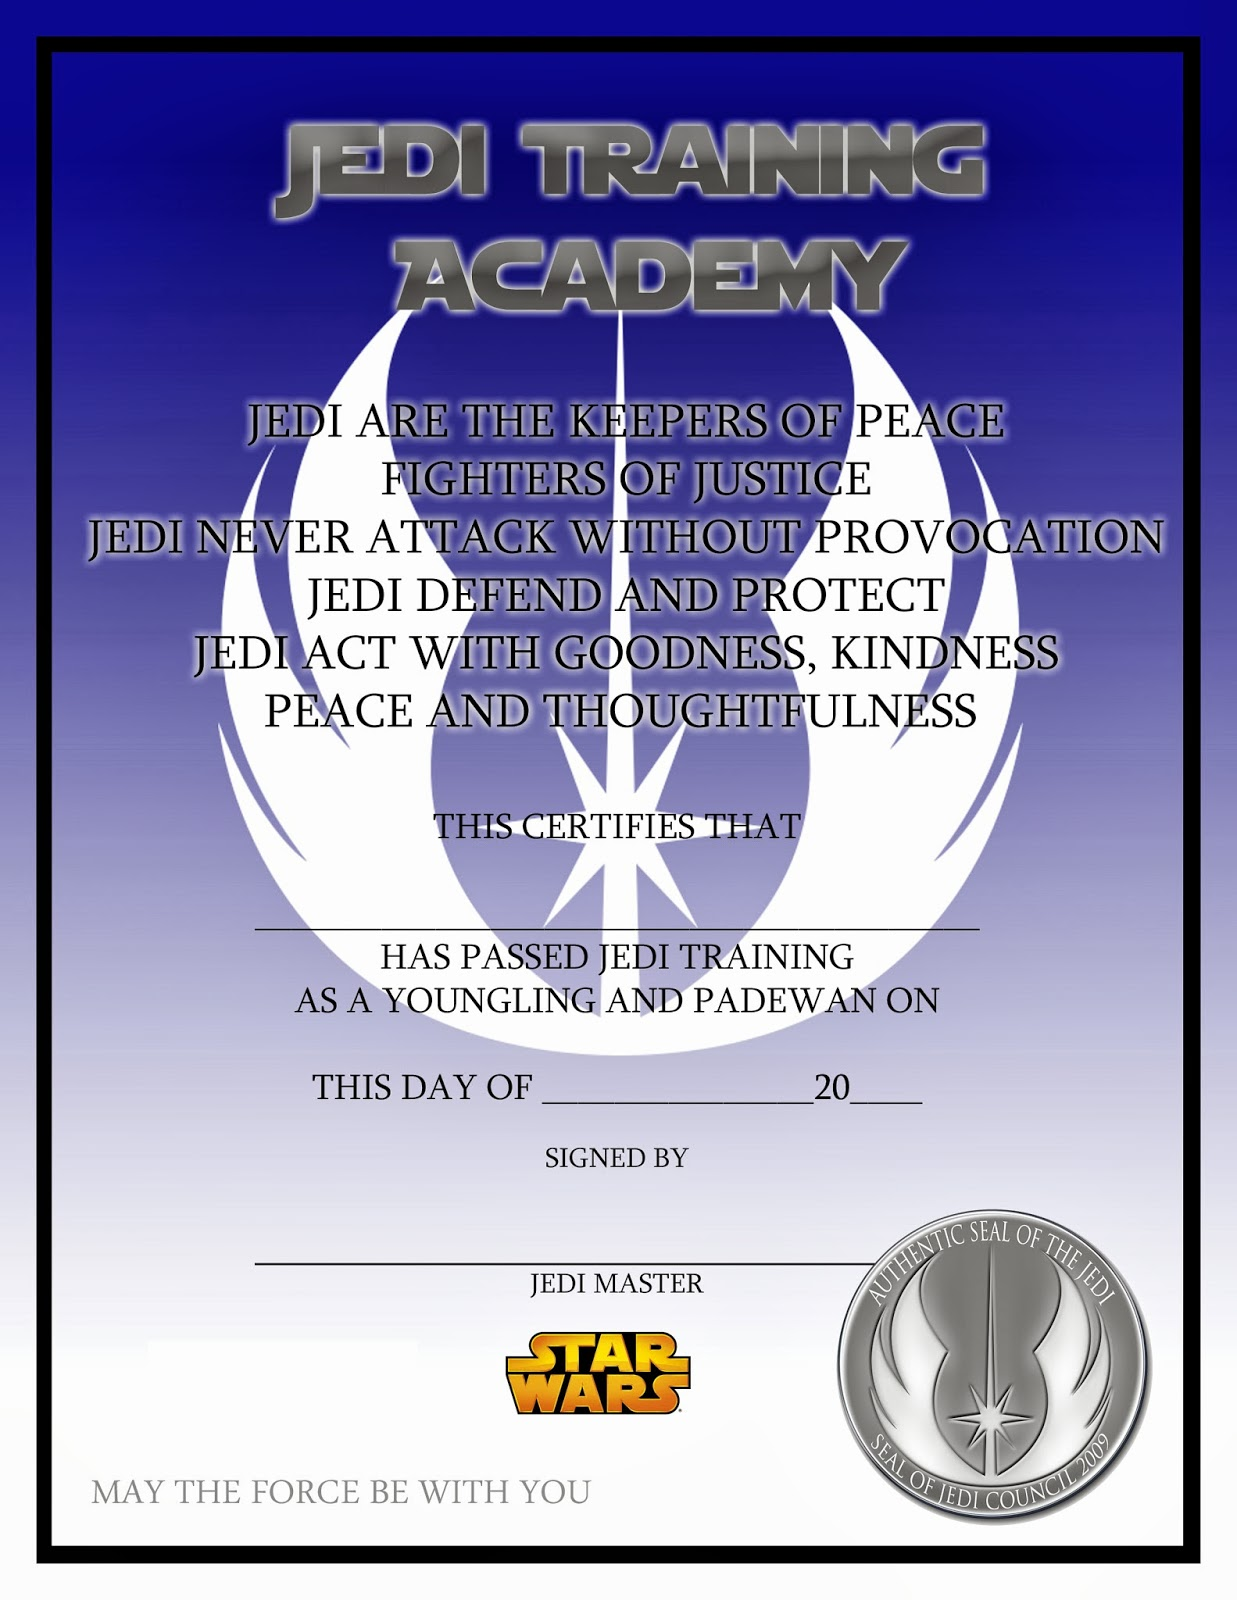 Lovely things star wars jedi training certificate free for Jedi certificate template free